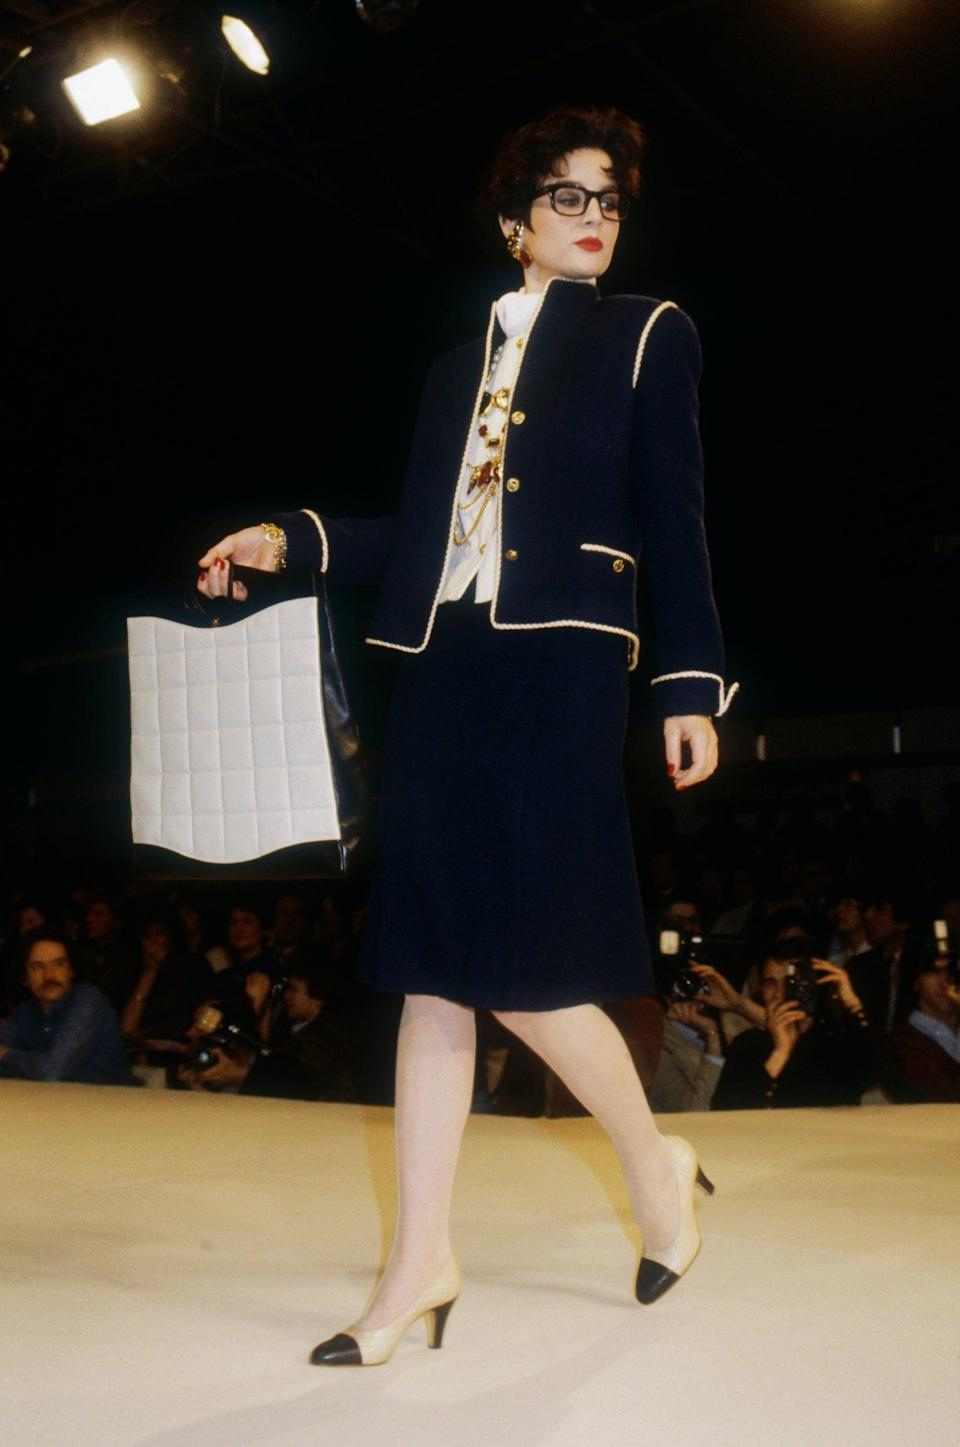 Chanel Haute Couture AW 1983Sygma via Getty Images